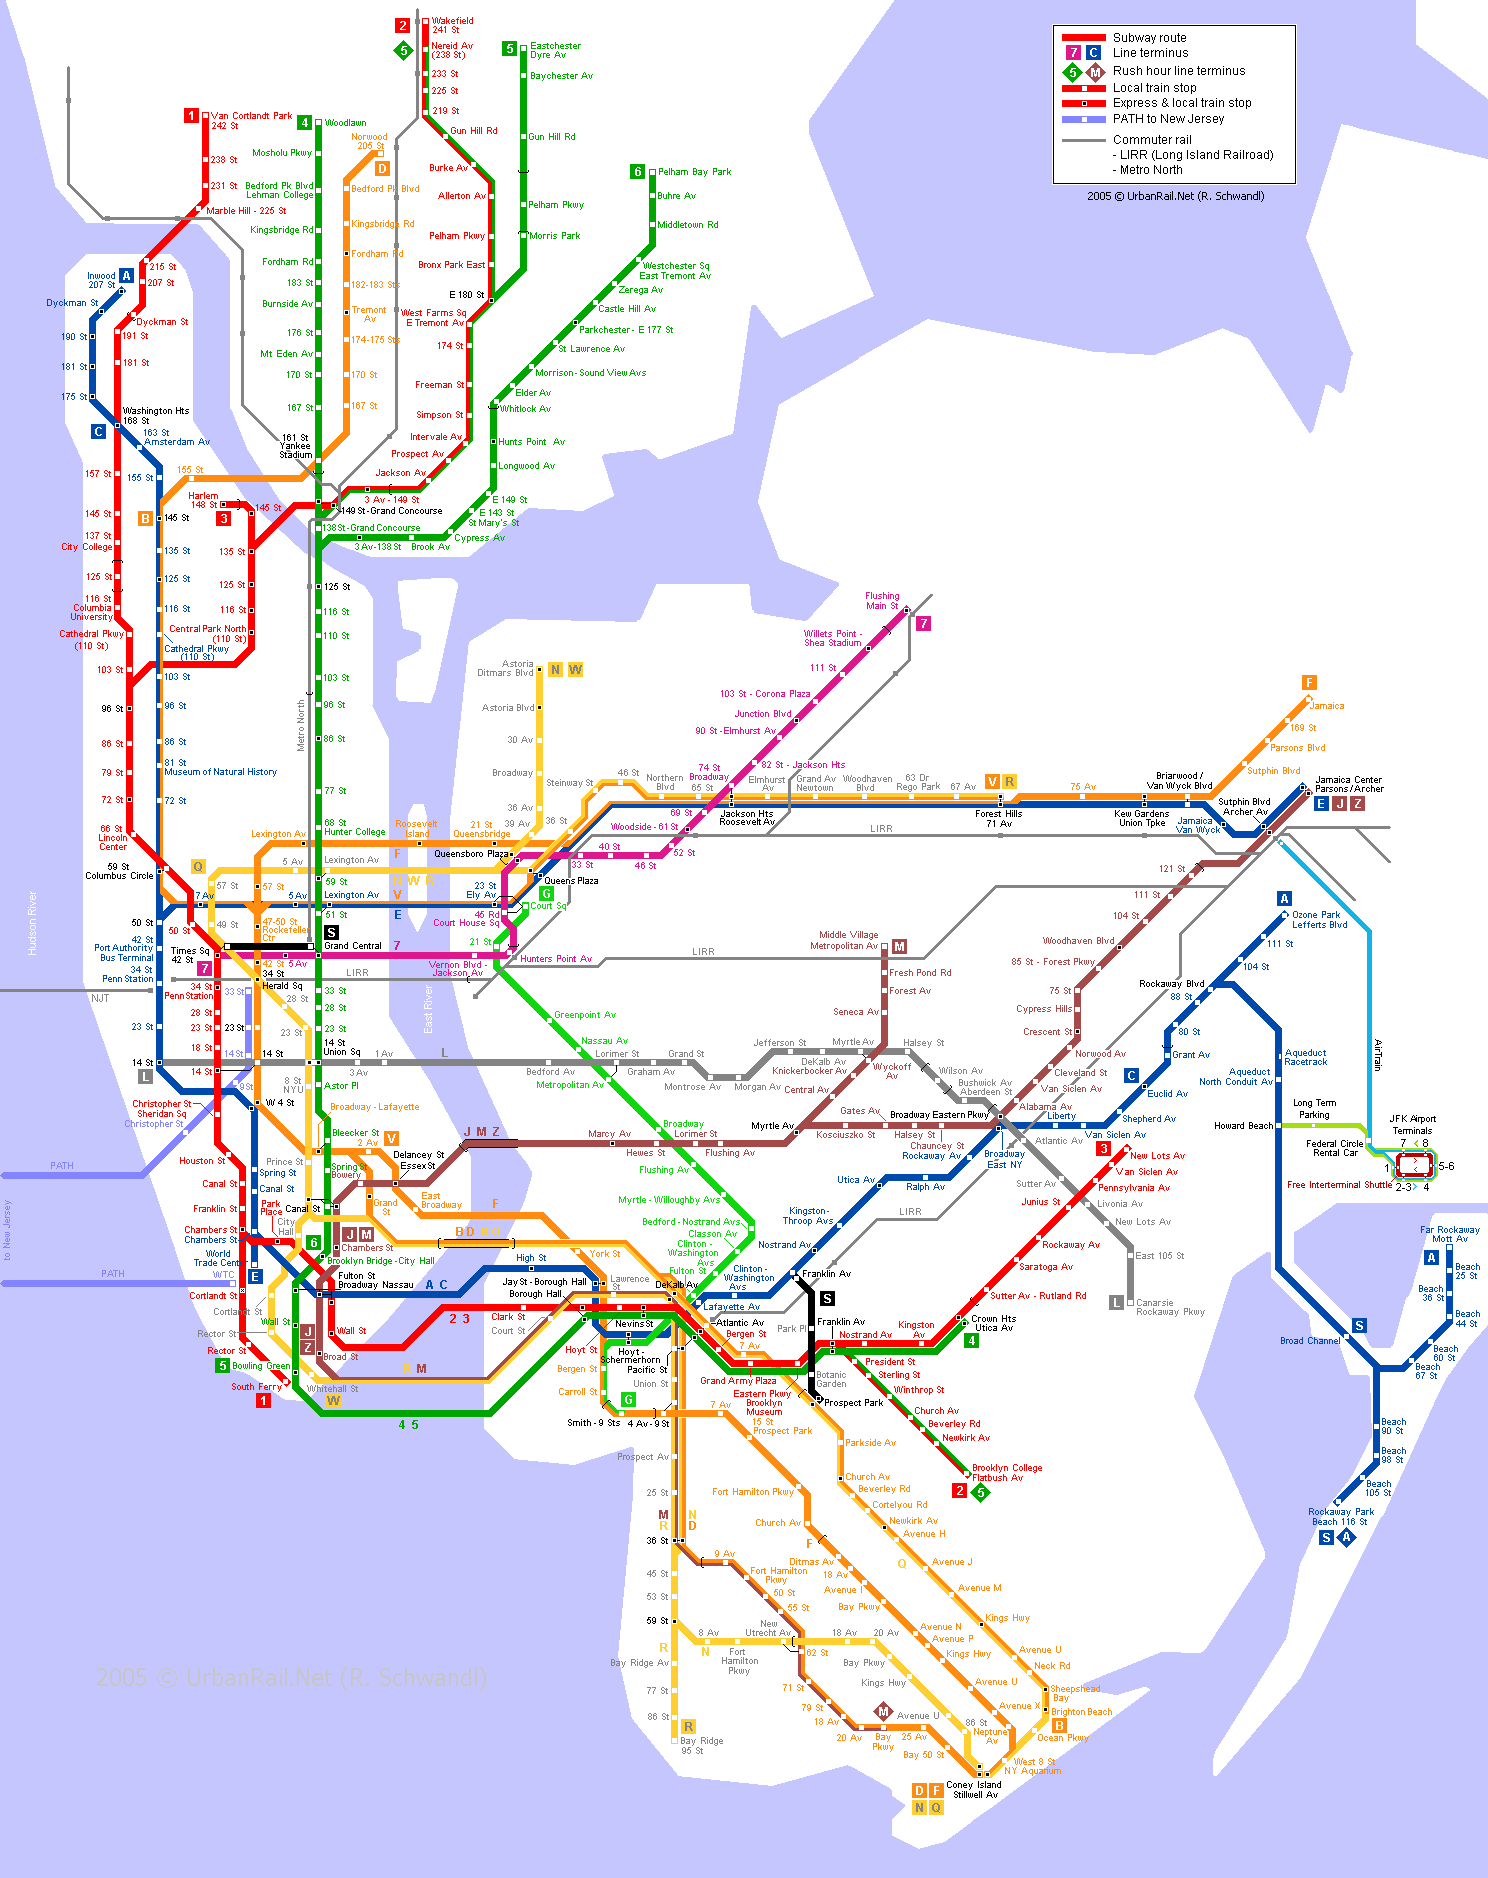 New York Subway Map for Download | Metro in New York - High ... Manhattan Subway Map With Attractions on manhattan bus map new york, manhattan ny map, manhattan map printable, manhattan map penn station, manhattan neighborhood map, manhattan map hotels, manhattan points of interest map, manhattan subway map, map of manhattan new york city attractions, florida state with attractions, map of midtown manhattan attractions, manhattan tourist map, manhattan map grand central station, manhattan sightseeing, manhattan tour map, manhattan street map, manhattan map nyc, new york top 10 attractions, lower manhattan map and attractions, manhattan road map,